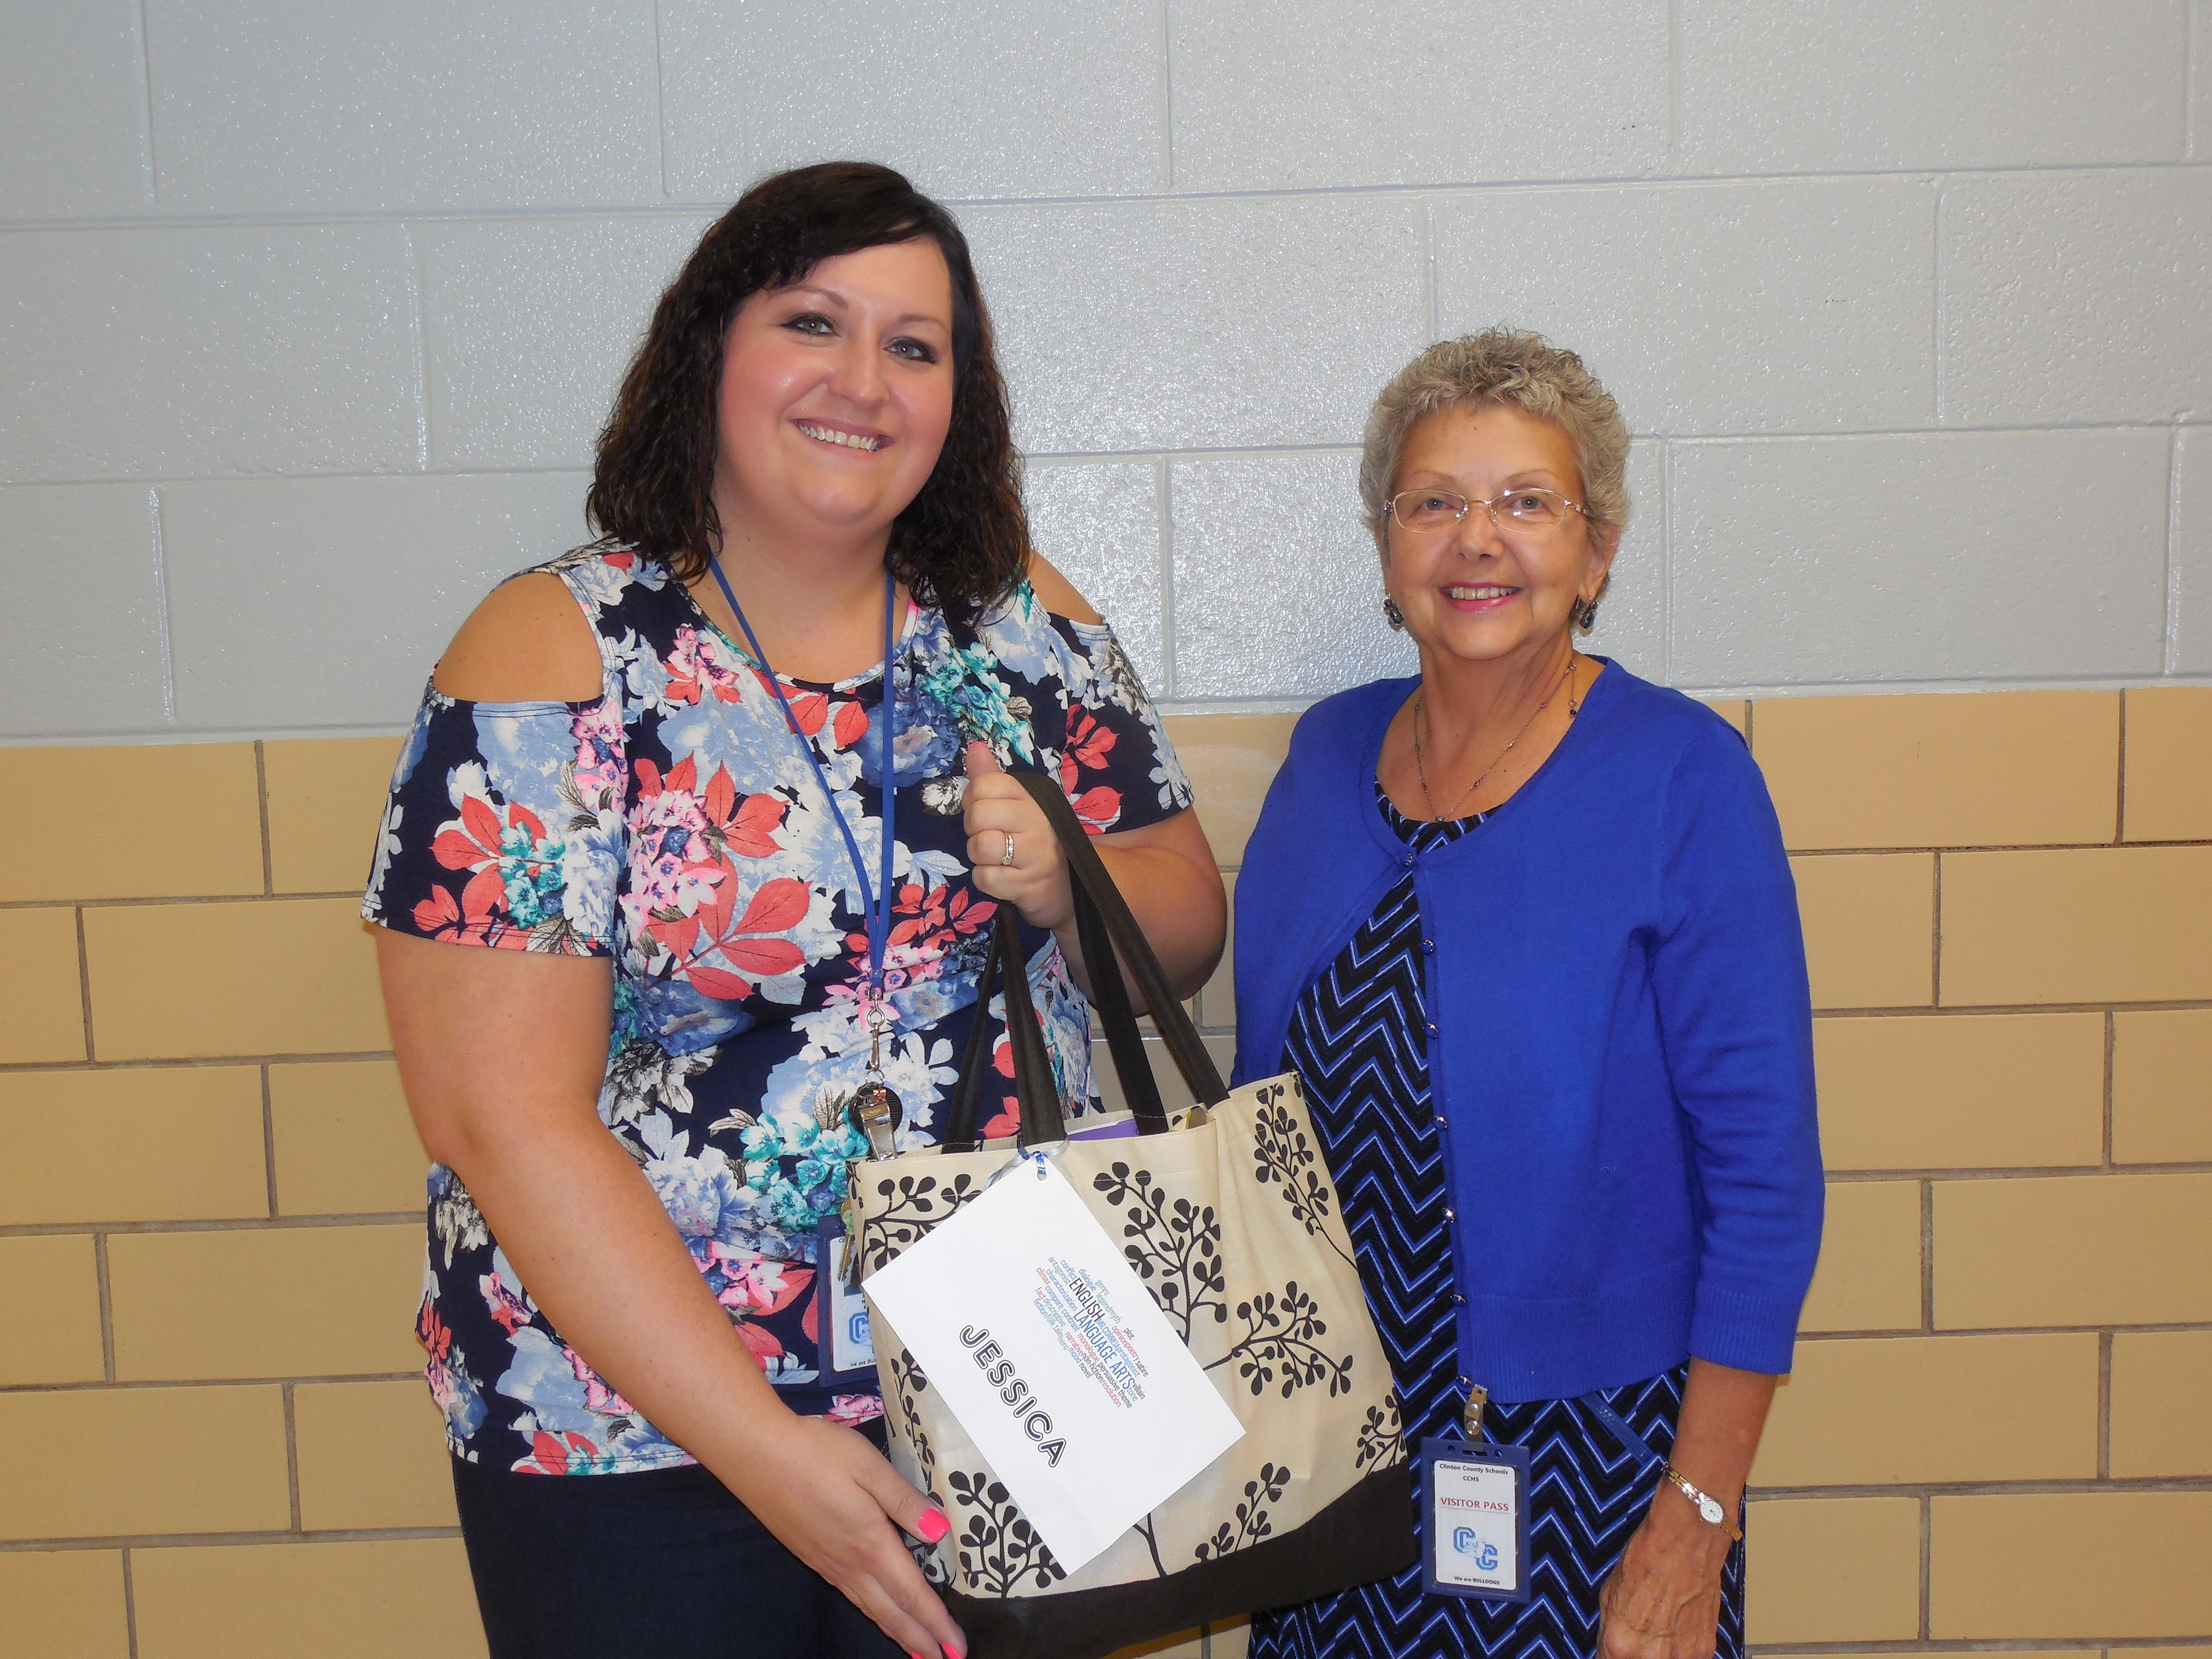 Jessica Ndiaye, English teacher at CCHS, receives her gift from Mrs. Stearns.